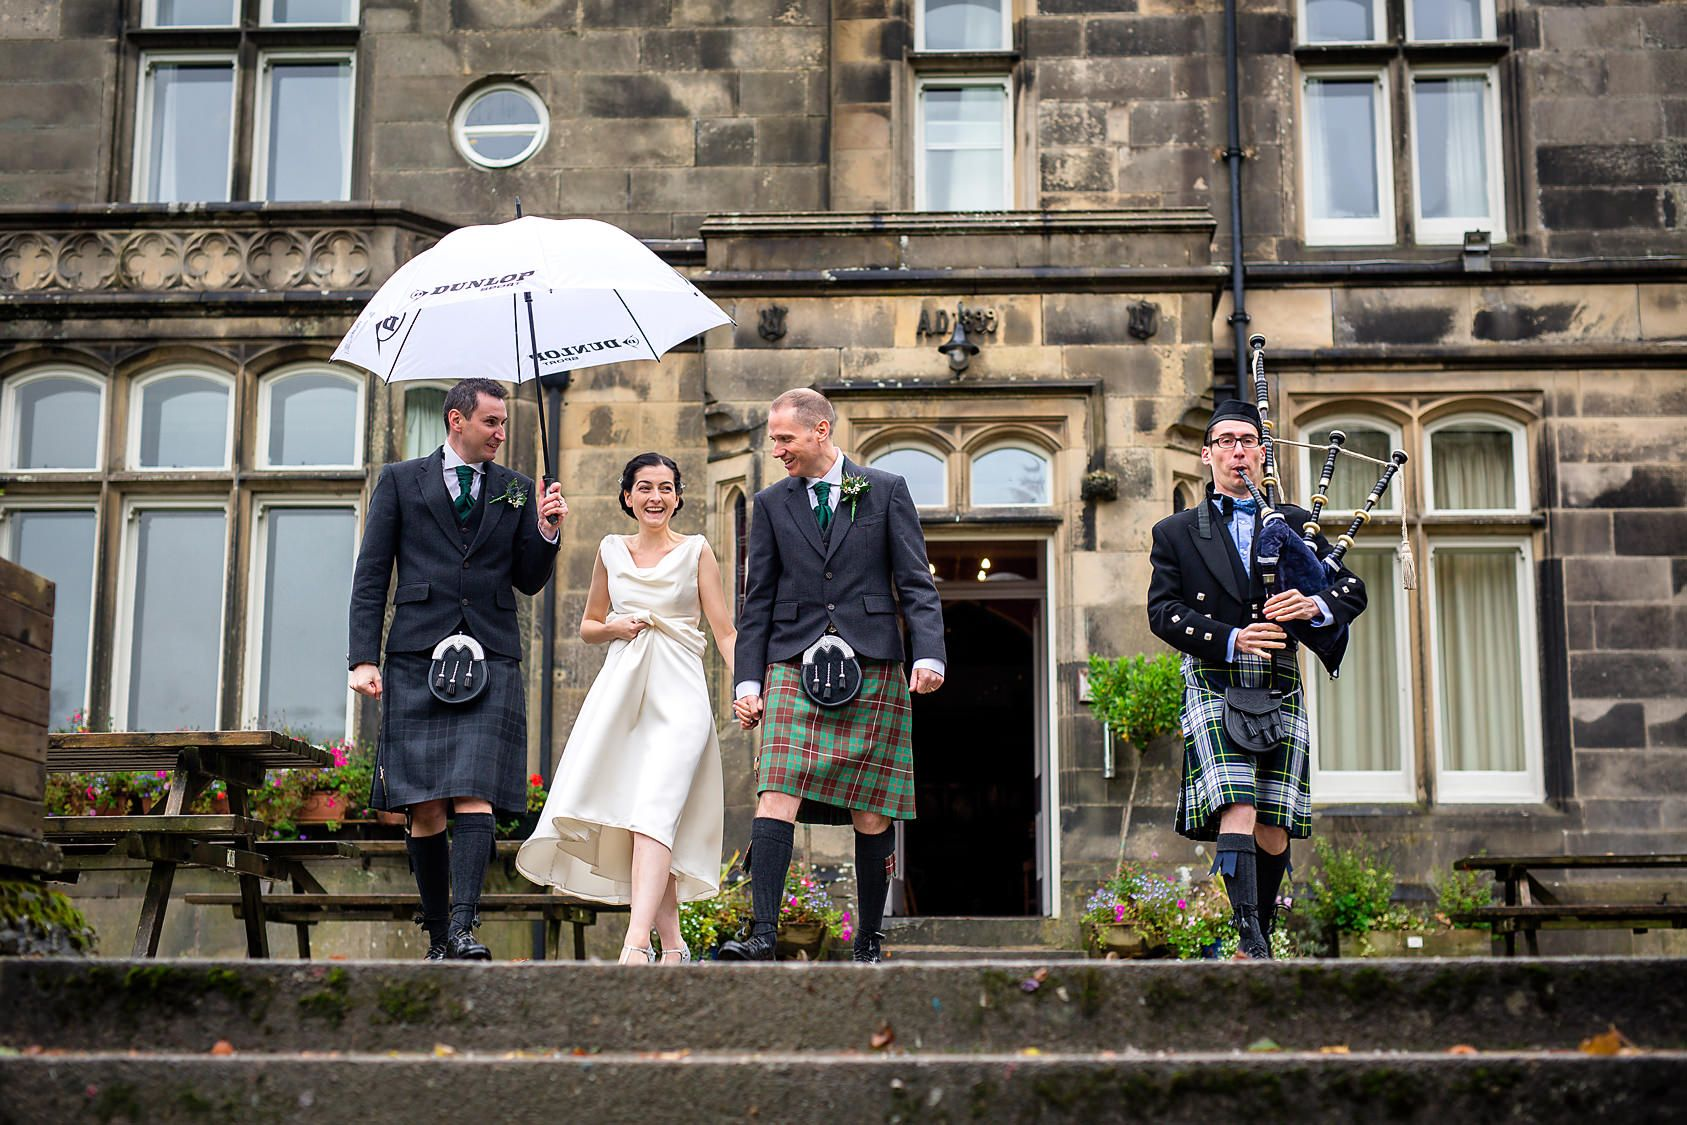 Bride and groom walk down stone steps at their Hargate hall wedding in the rain